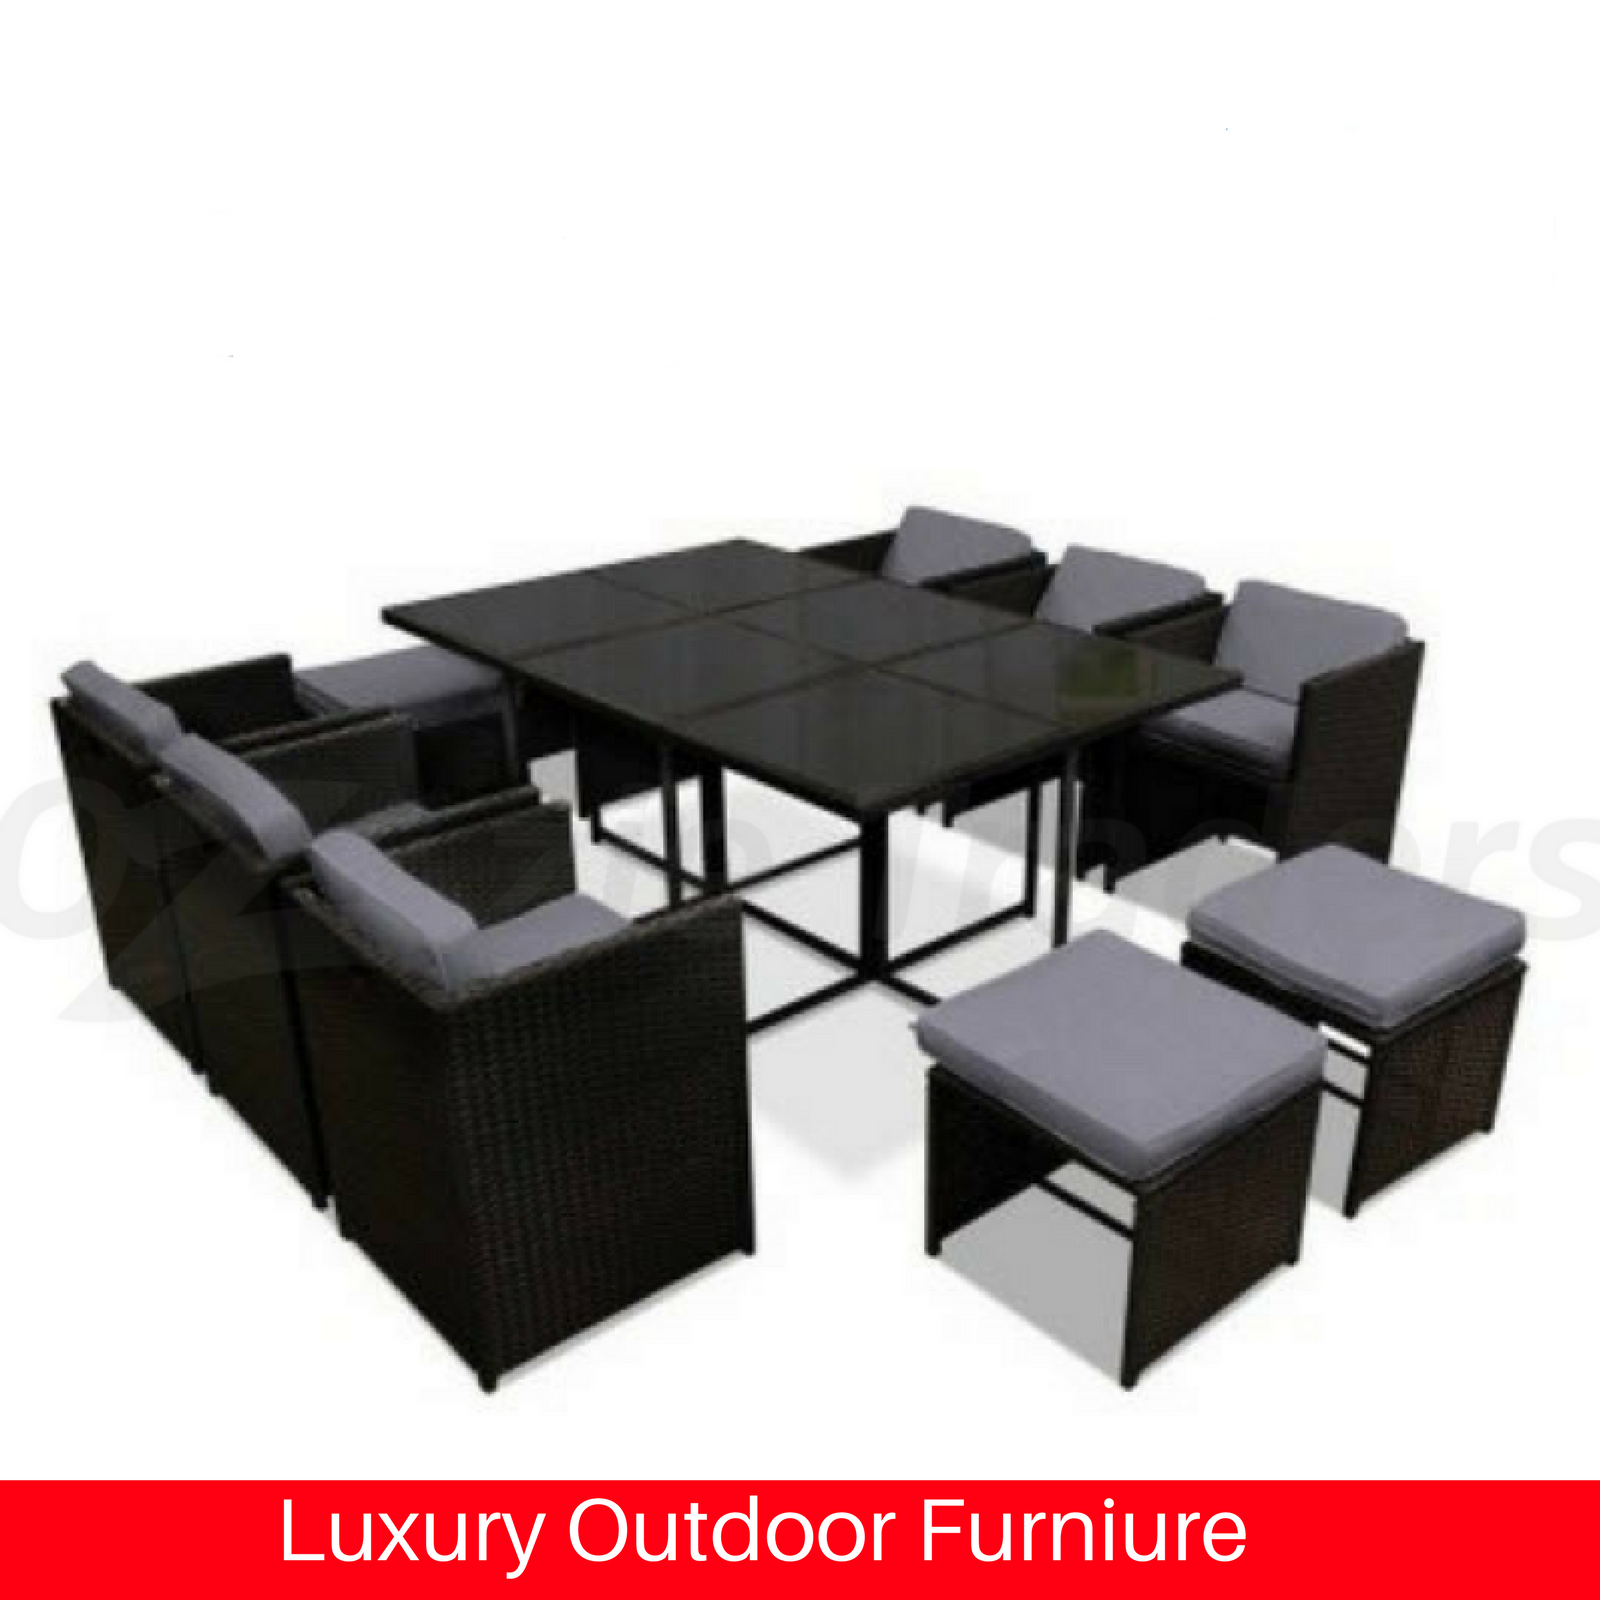 Outdoor dining furniture wicker luxury patio setting for Fine outdoor furniture